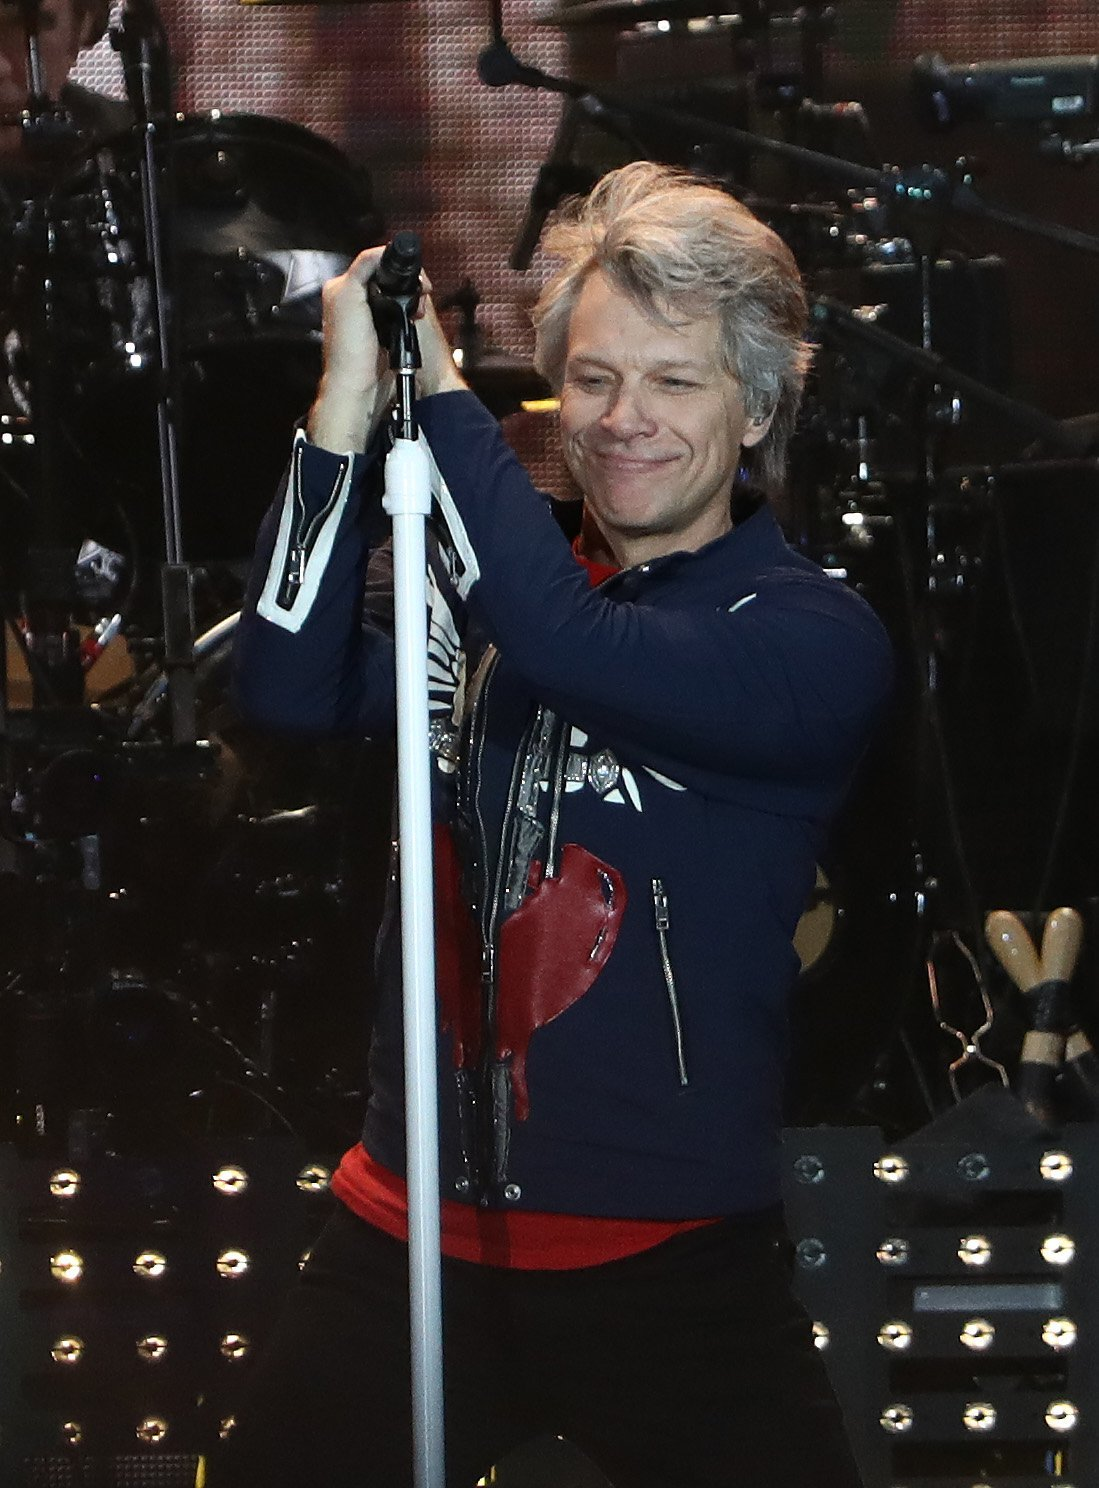 """Jon Bon Jovi performing during the """"Bon Jovi This House Is Not For Sale"""" Tour. 